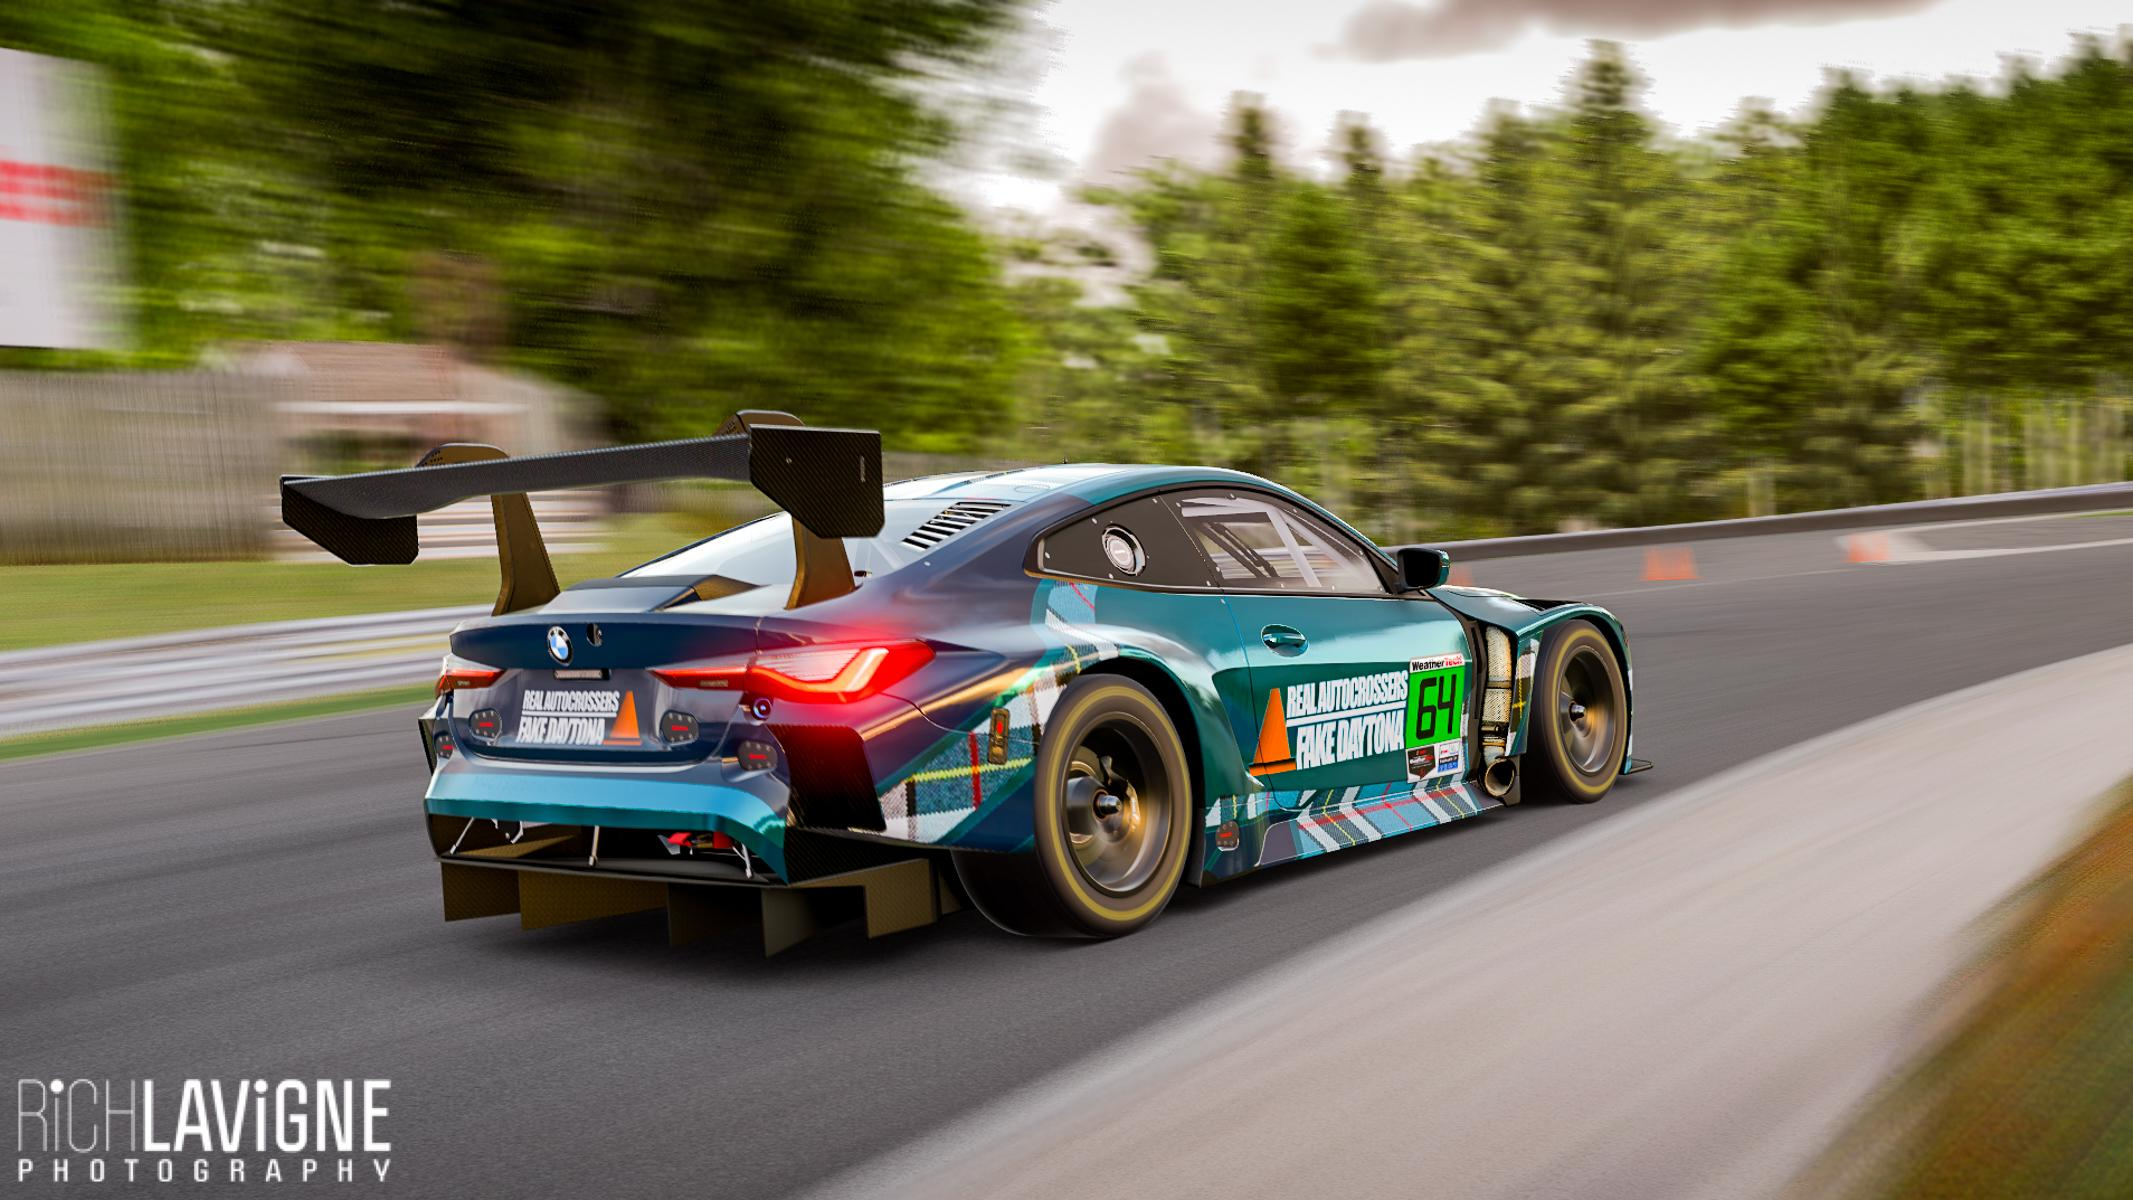 Preview of RealAutoXers M4 GT3 by Richard Lavigne